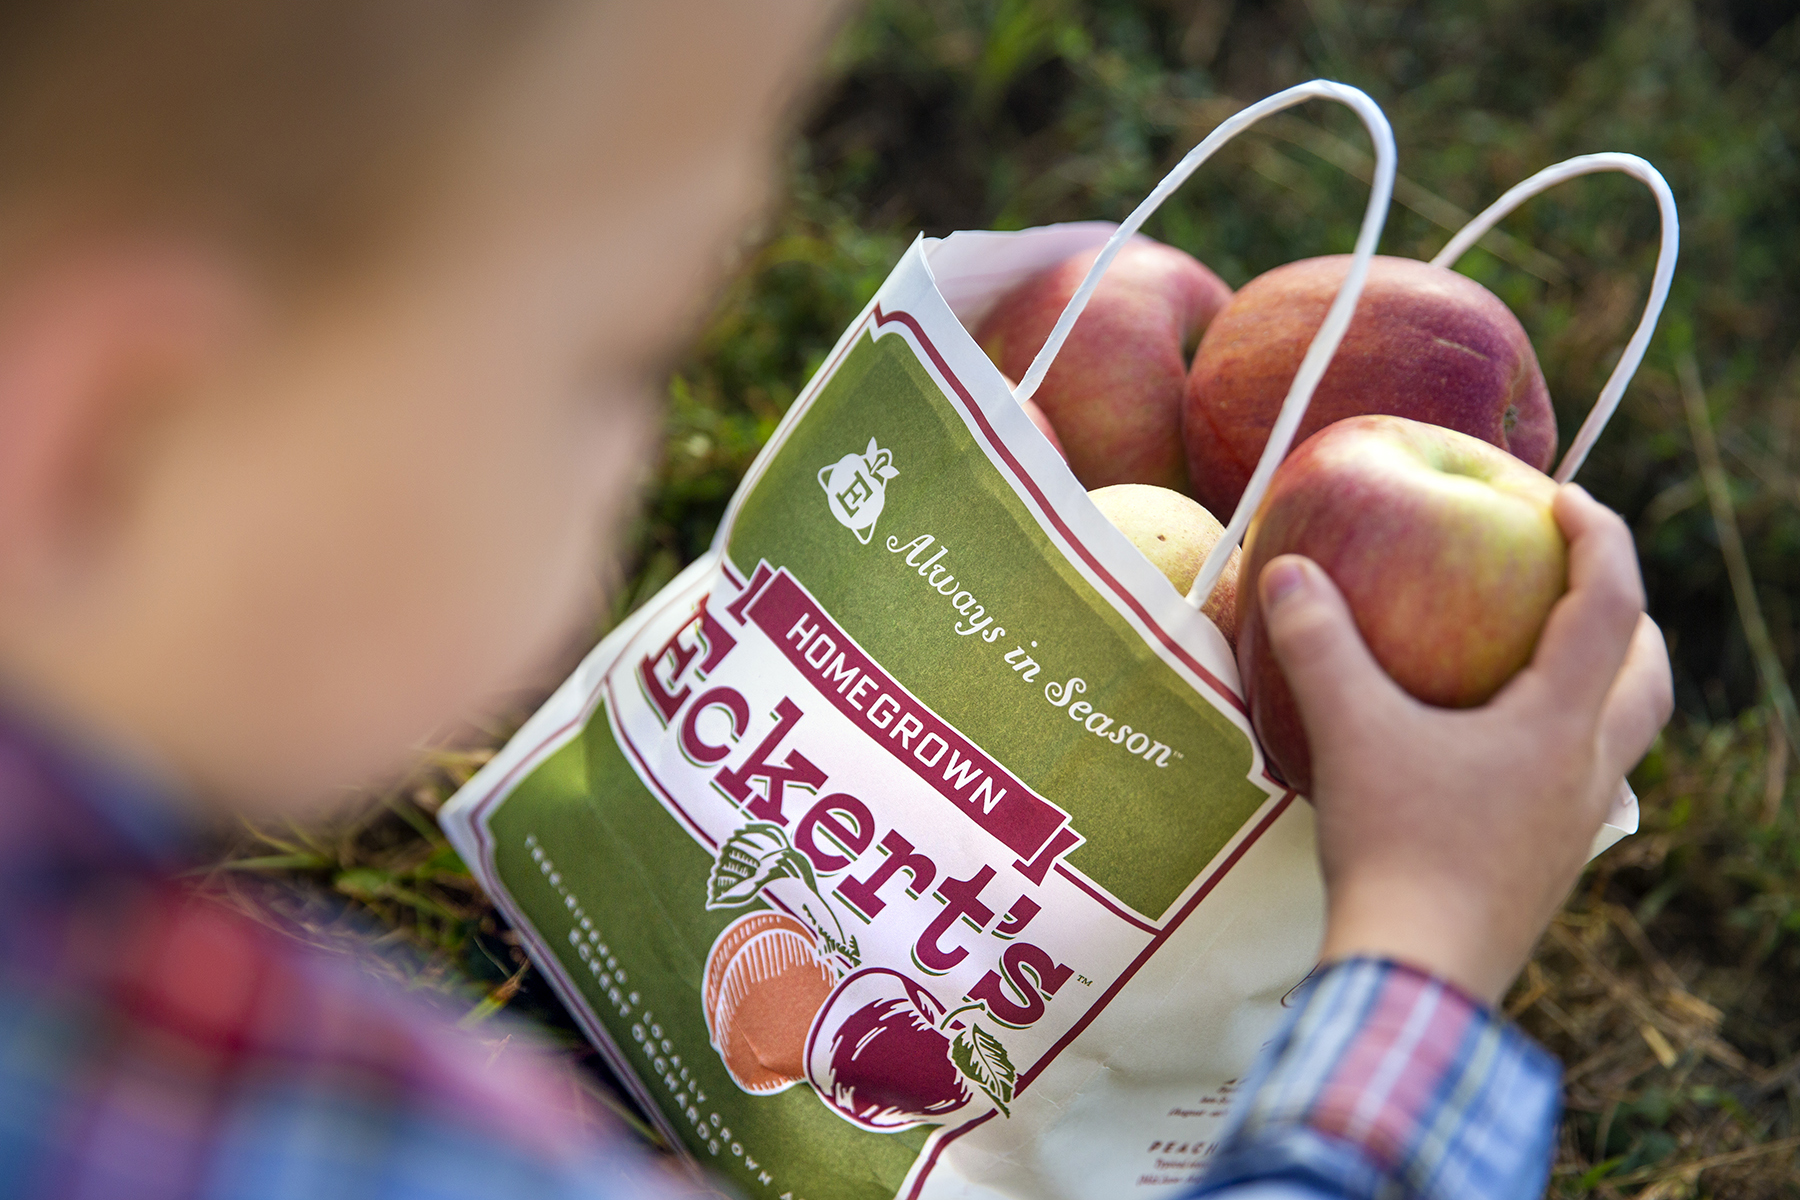 Child placing apple into branded bag